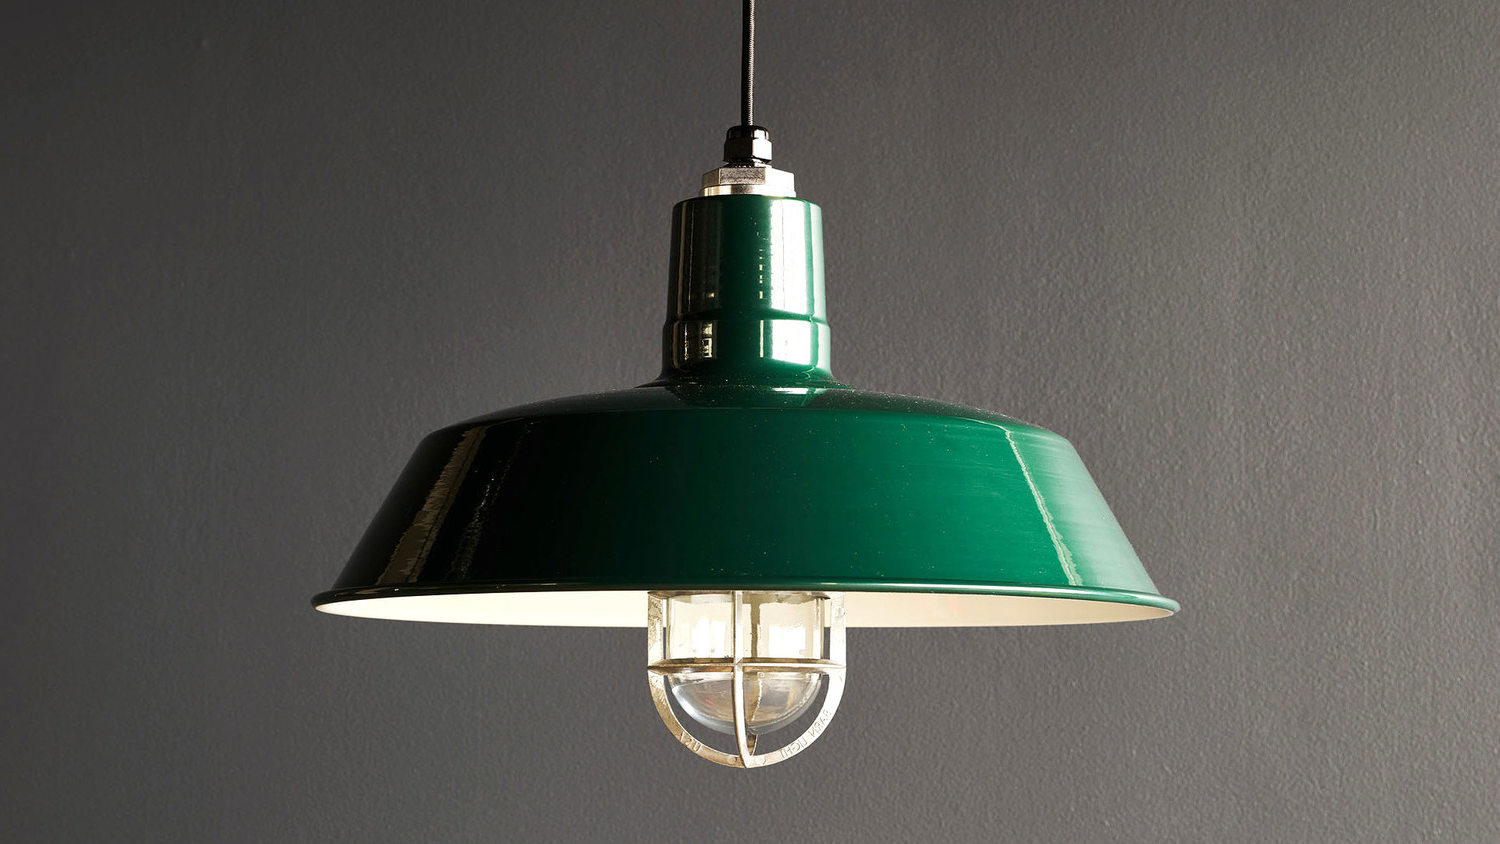 Most Recent The Best Fall Sales: Red Barrel Studio Crofoot 9 Light In Crofoot 5 Light Shaded Chandeliers (View 20 of 25)